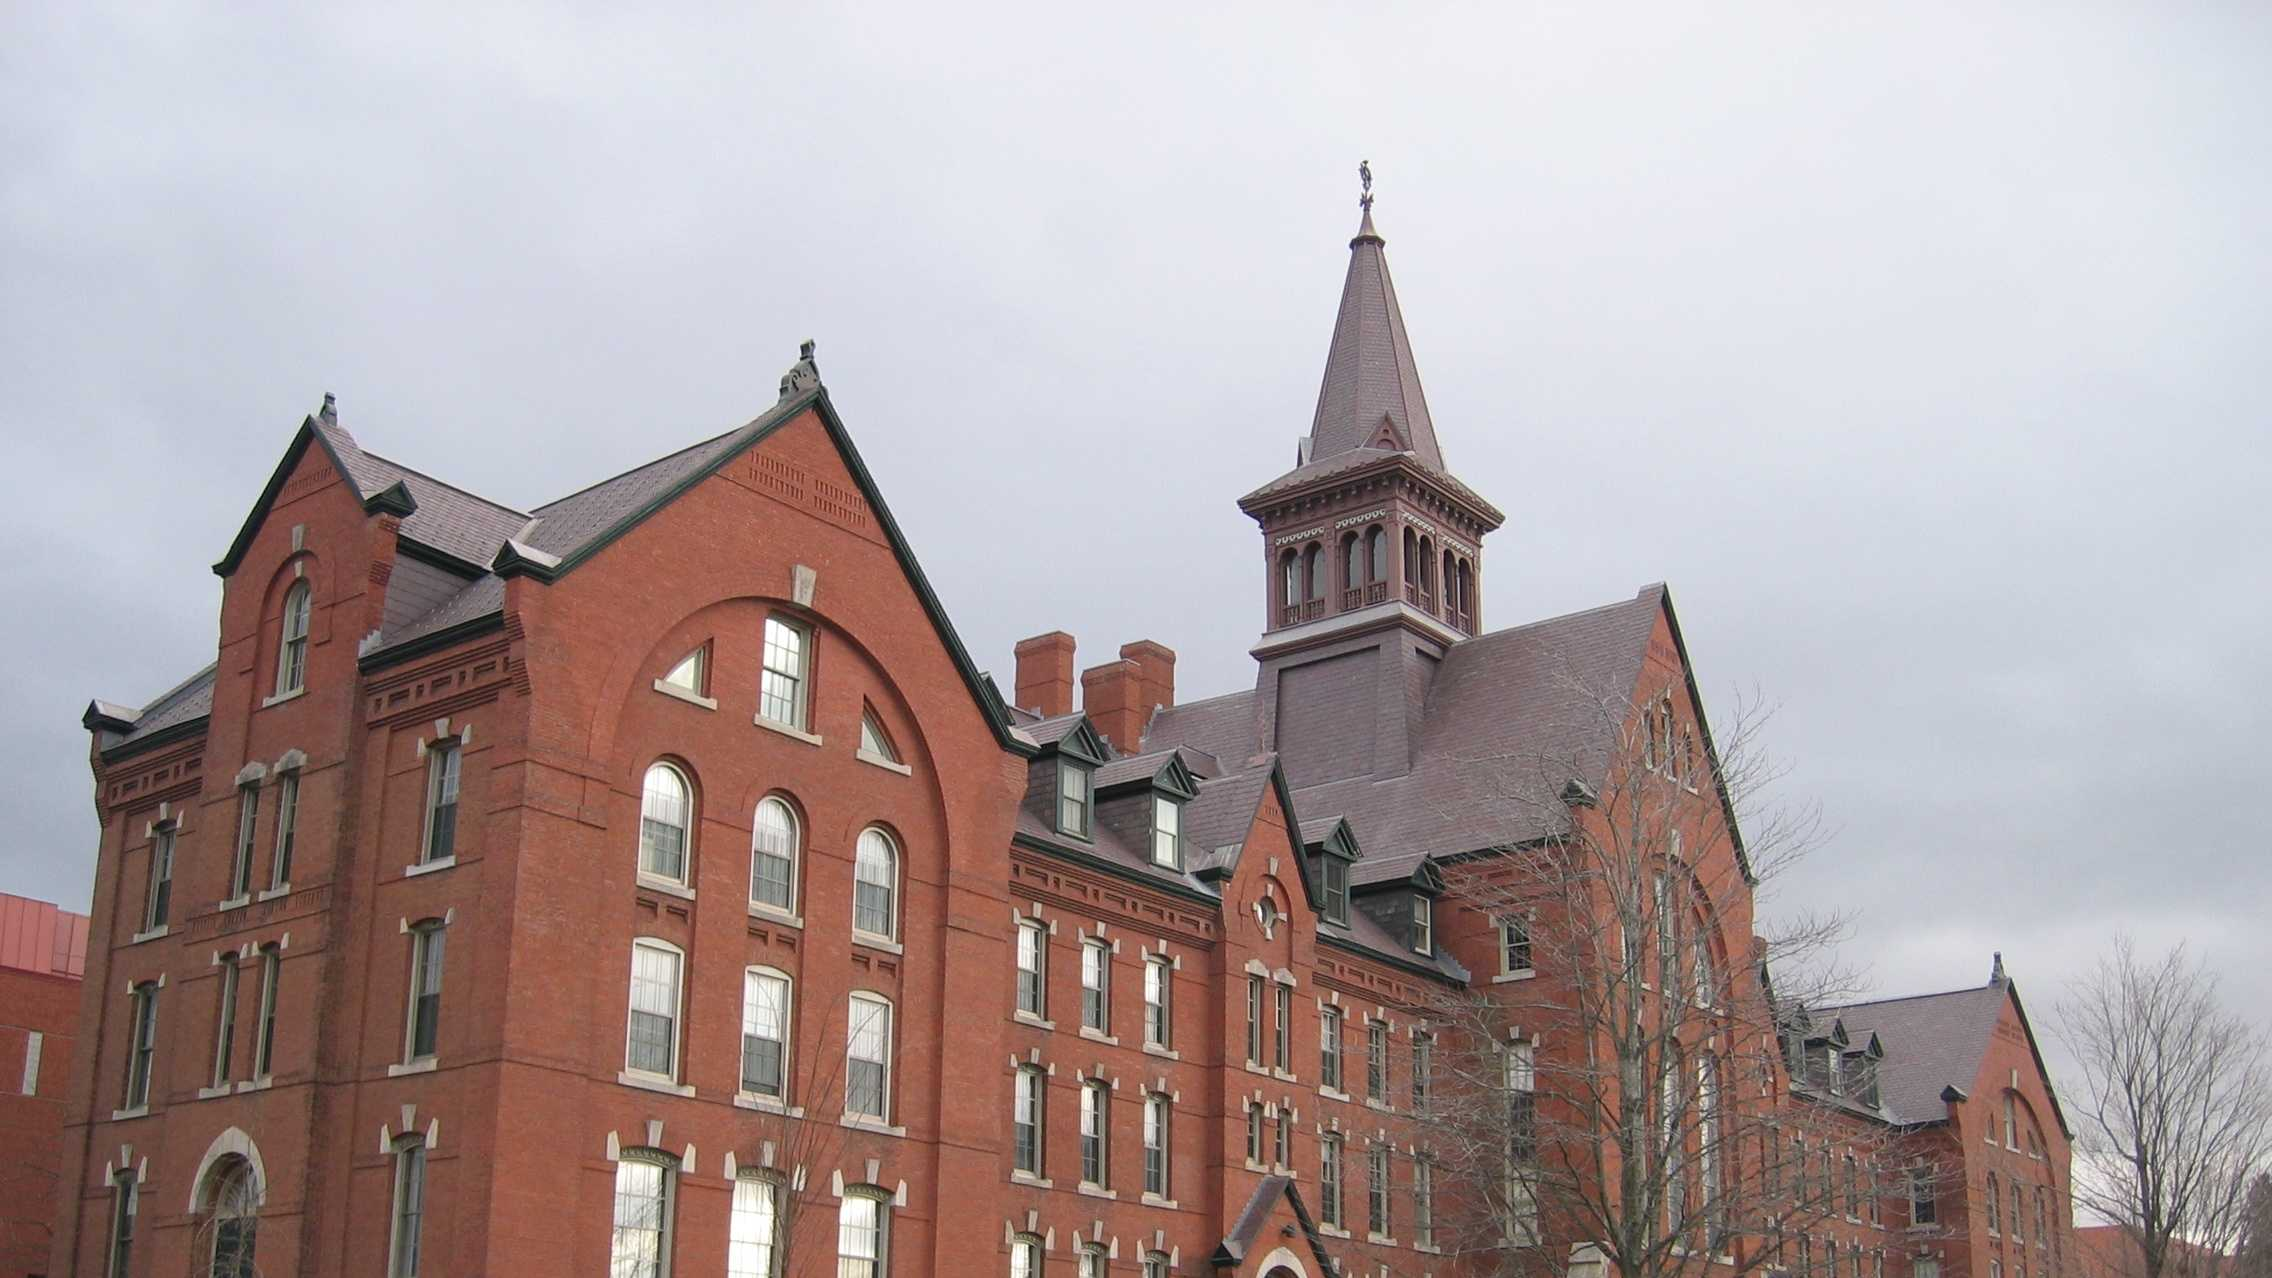 13. University of Vermont in Burlington, Vt. - 9.3% of scores sent to school.